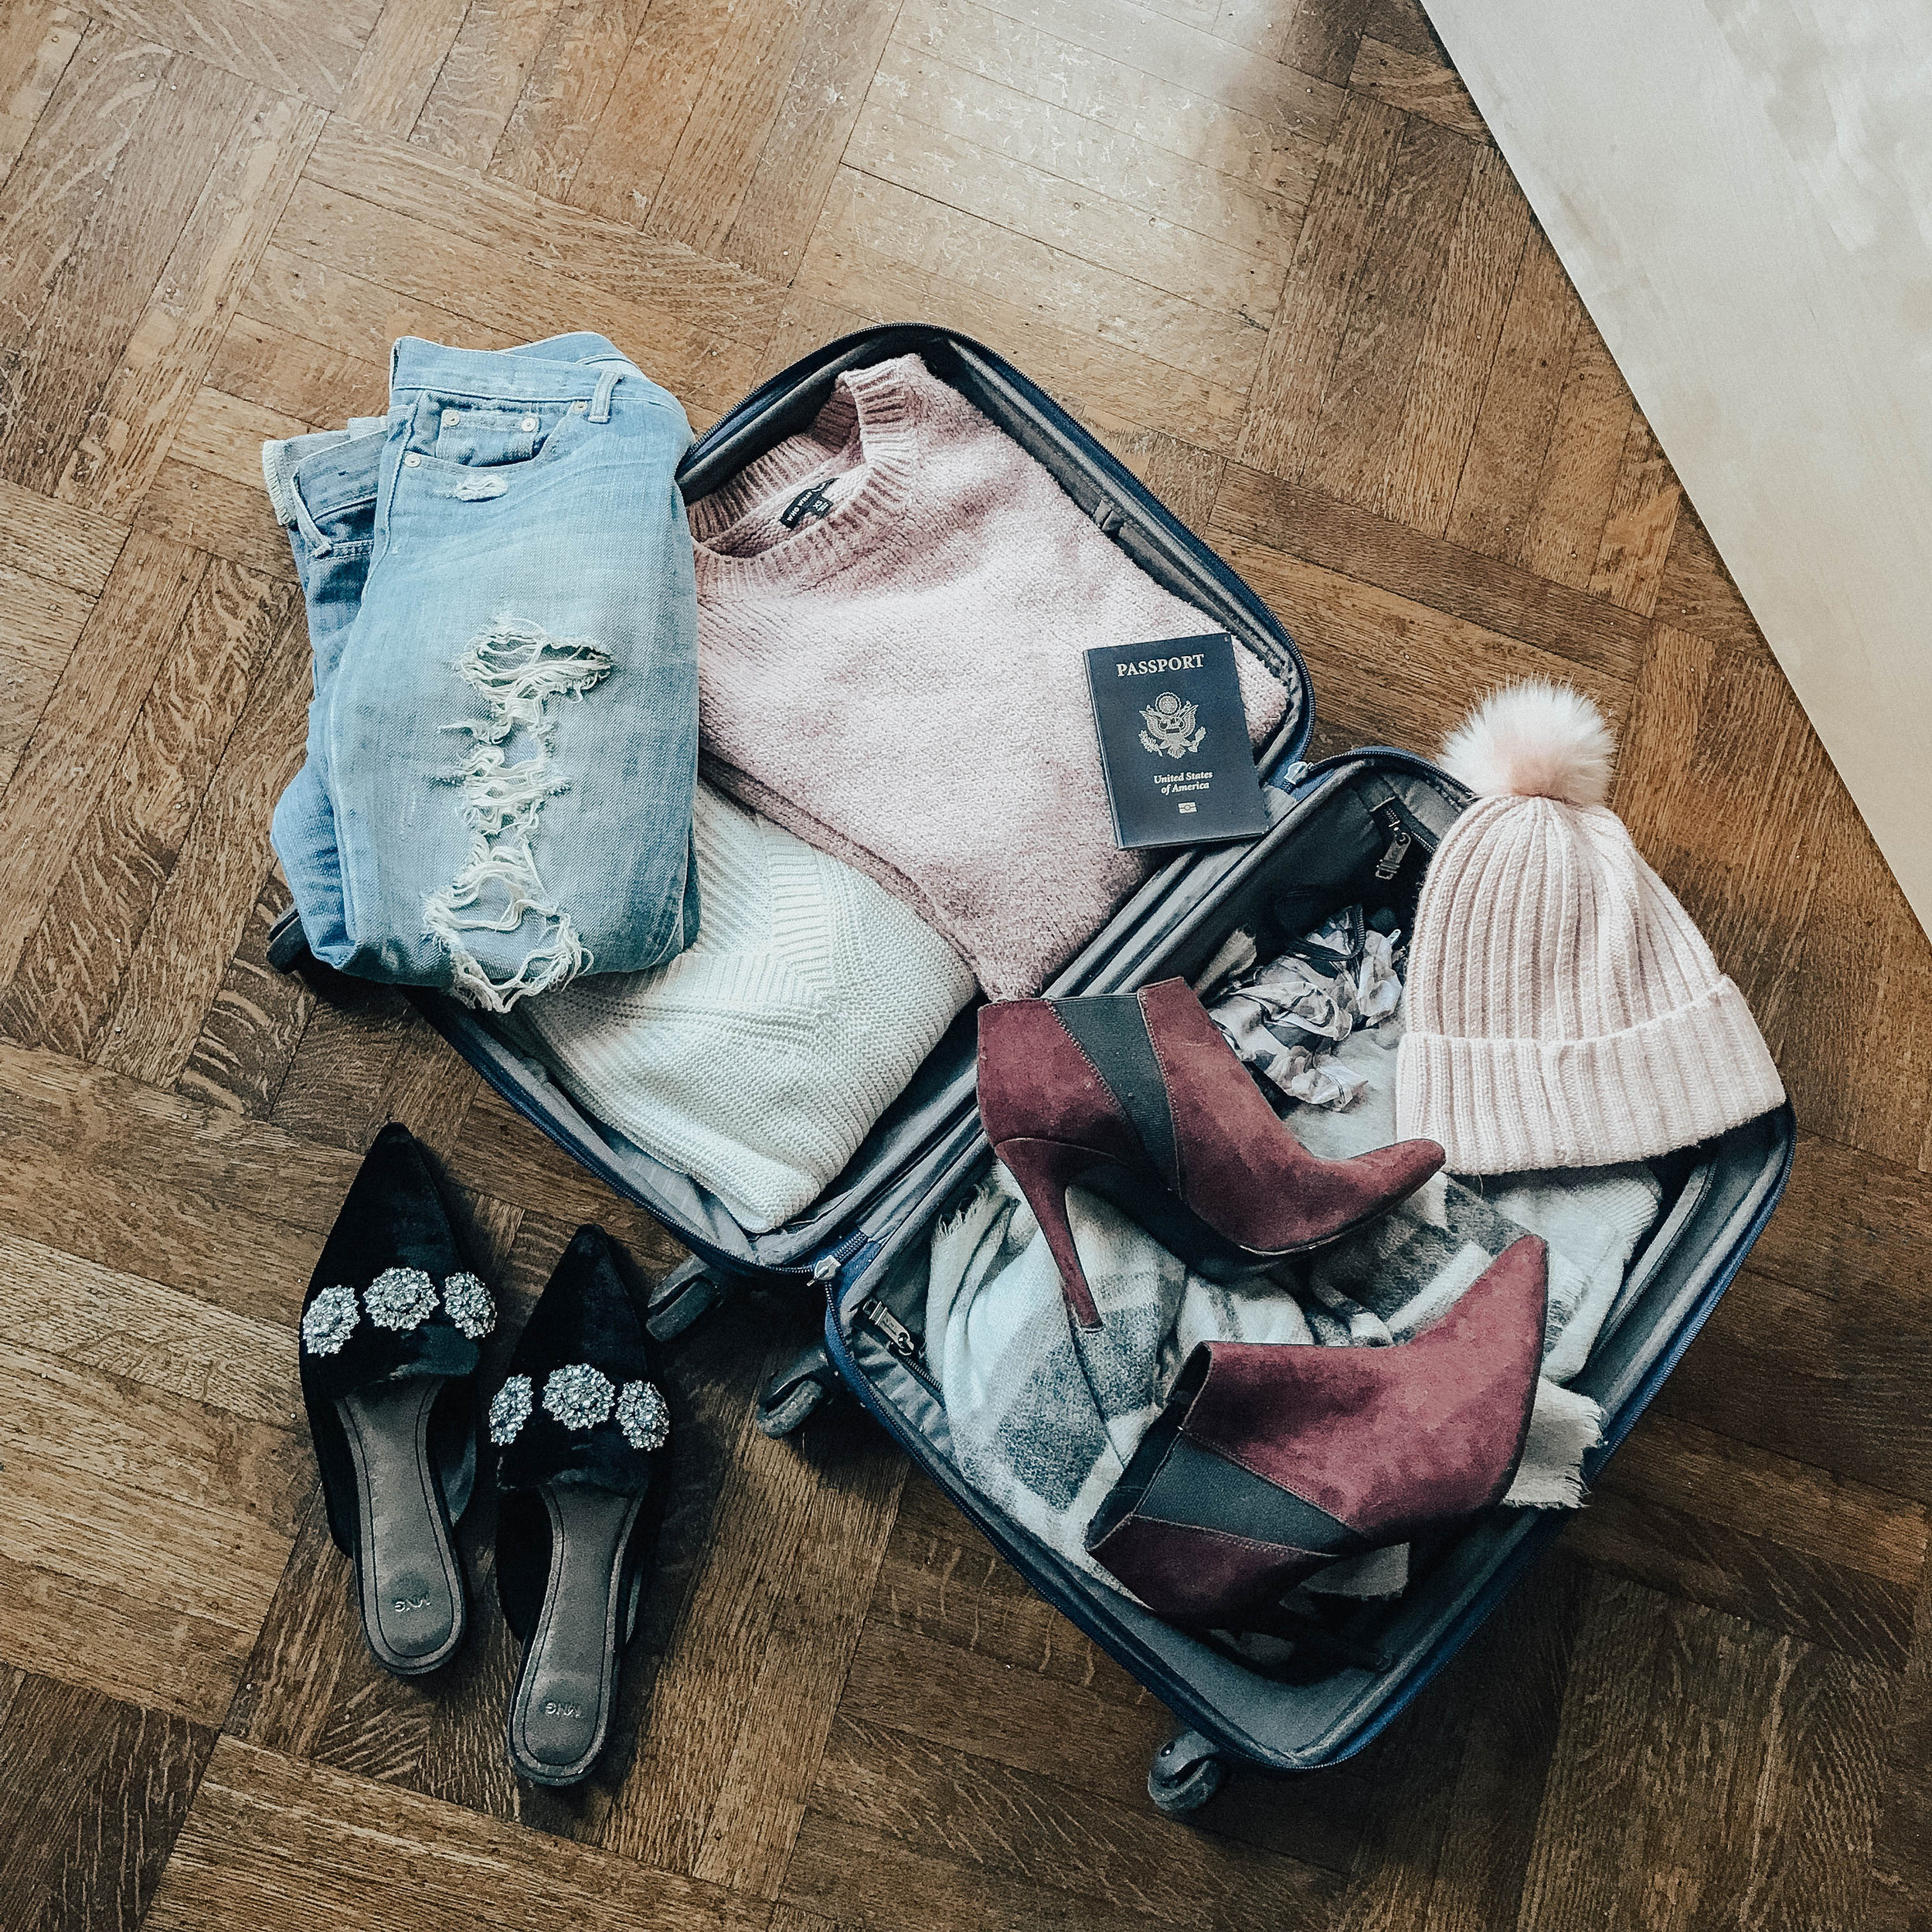 What I Packed: One bag, 11 days